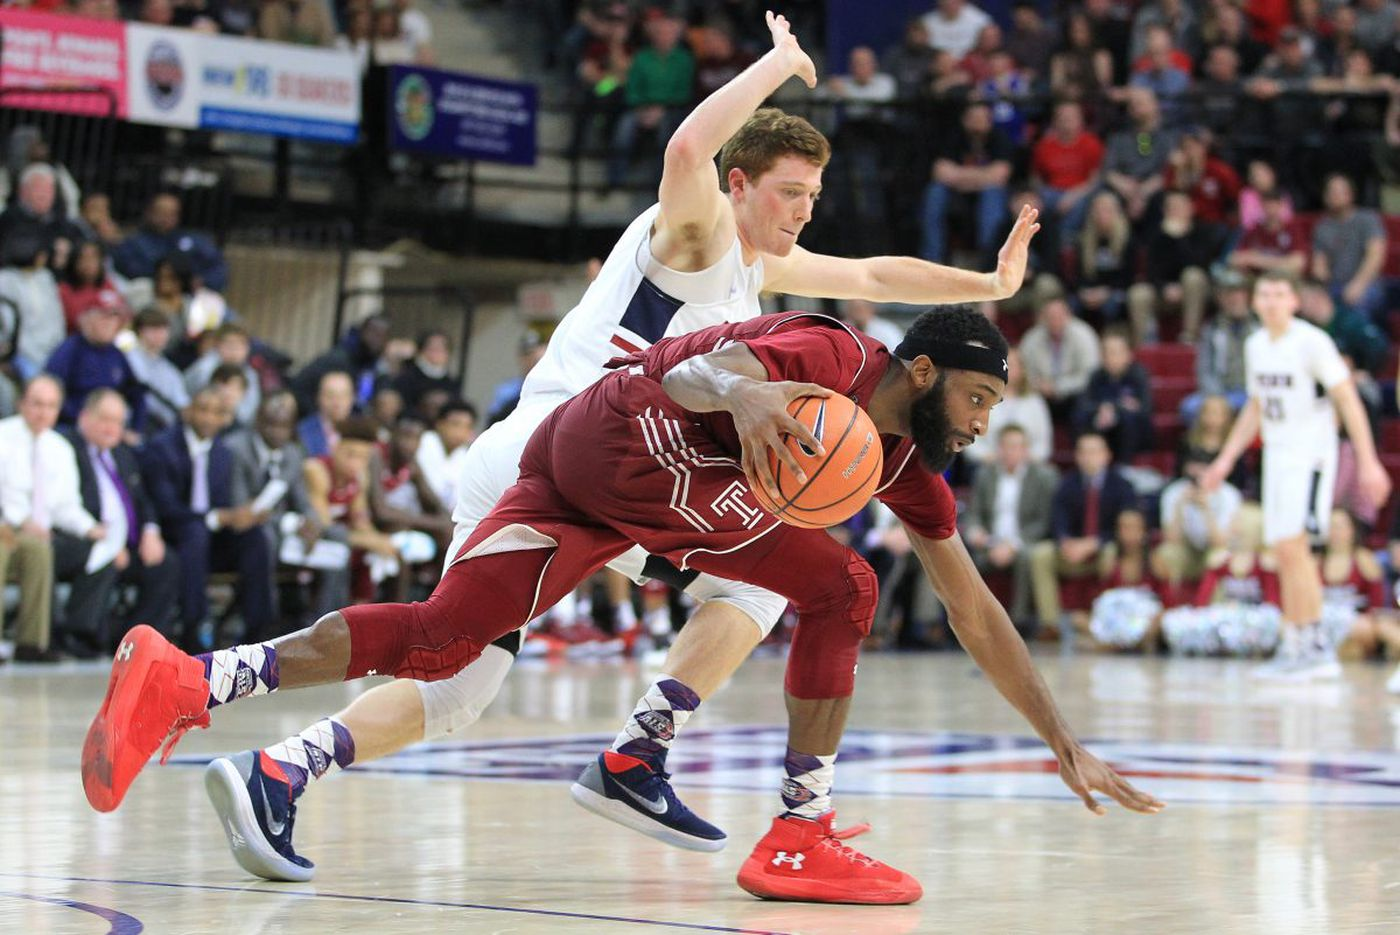 How Penn's Jake Silpe turned 'DNP' into 'P' | City Six observations